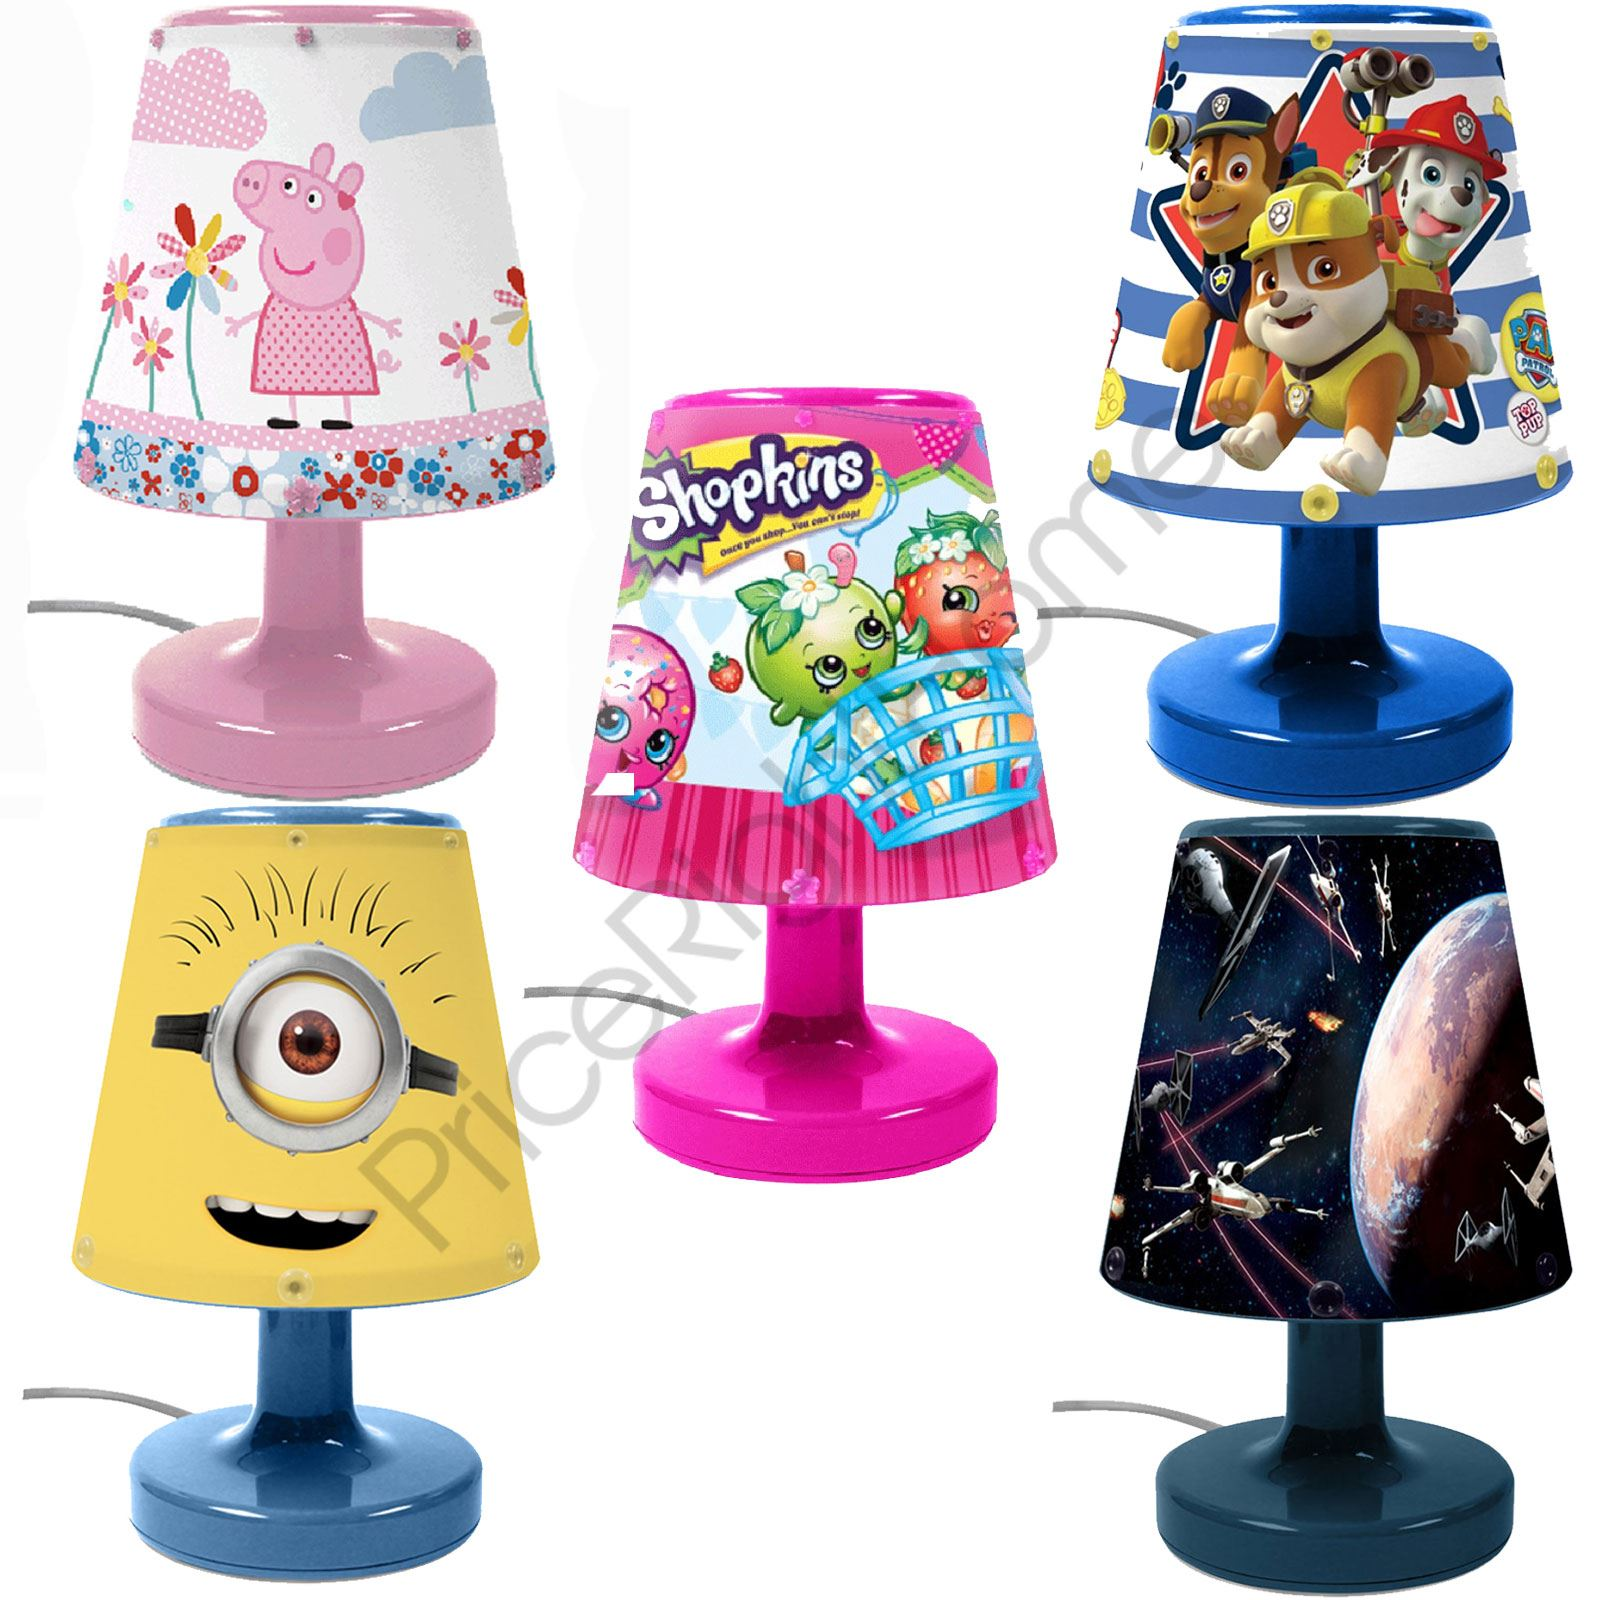 Disney Amp Character Kids Bedroom Bedside Lamps For Boys And